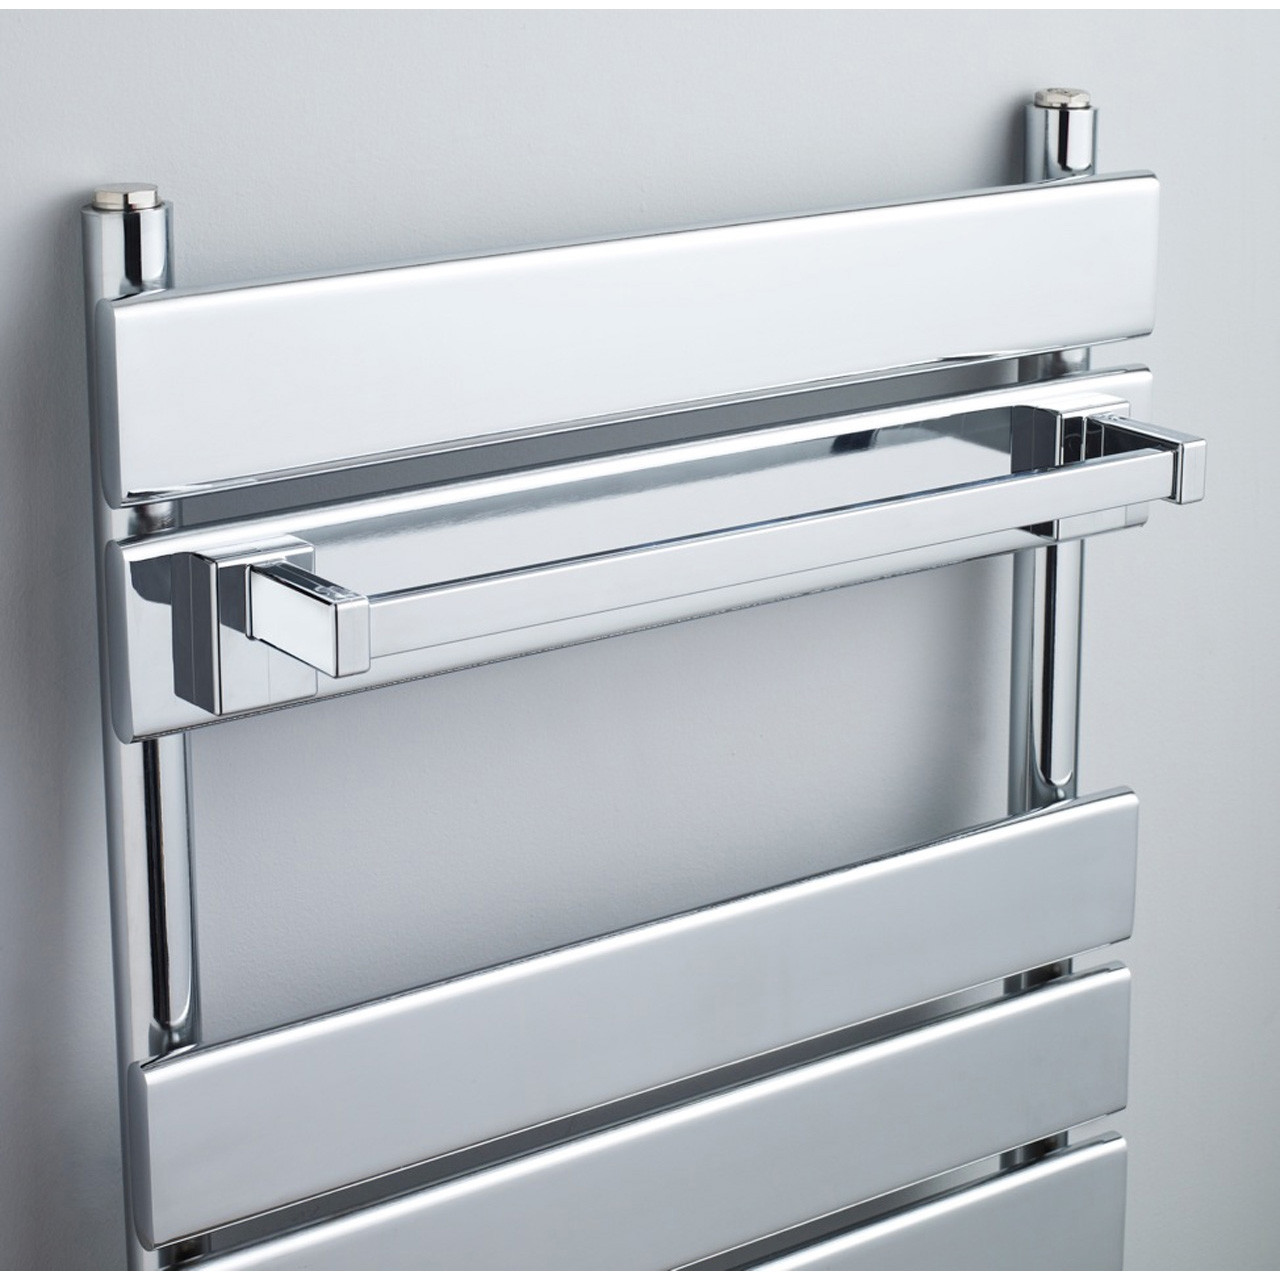 Hudson Reed Magnetic Towel Rail - ACC005